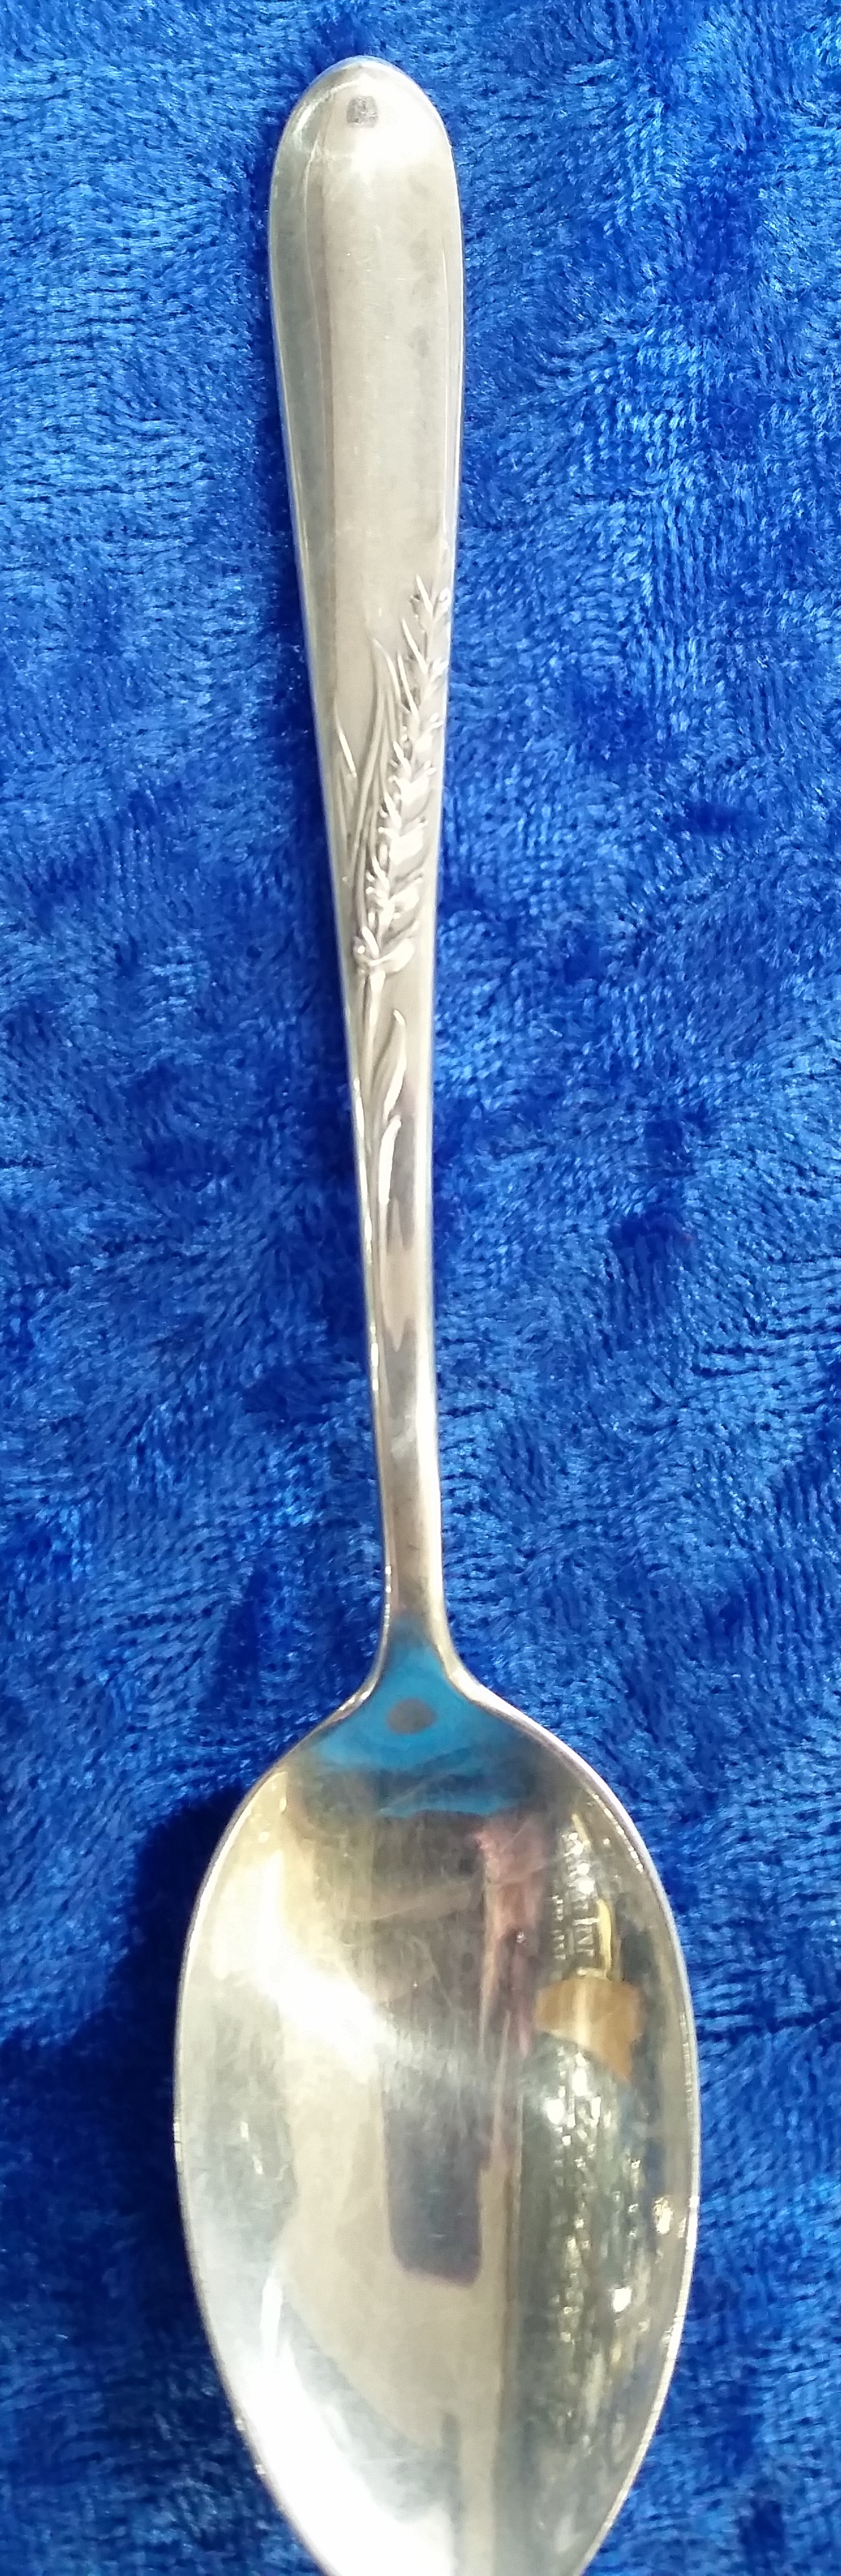 Reed & Barton - 'Silver Wheat' - Demitasse Spoon